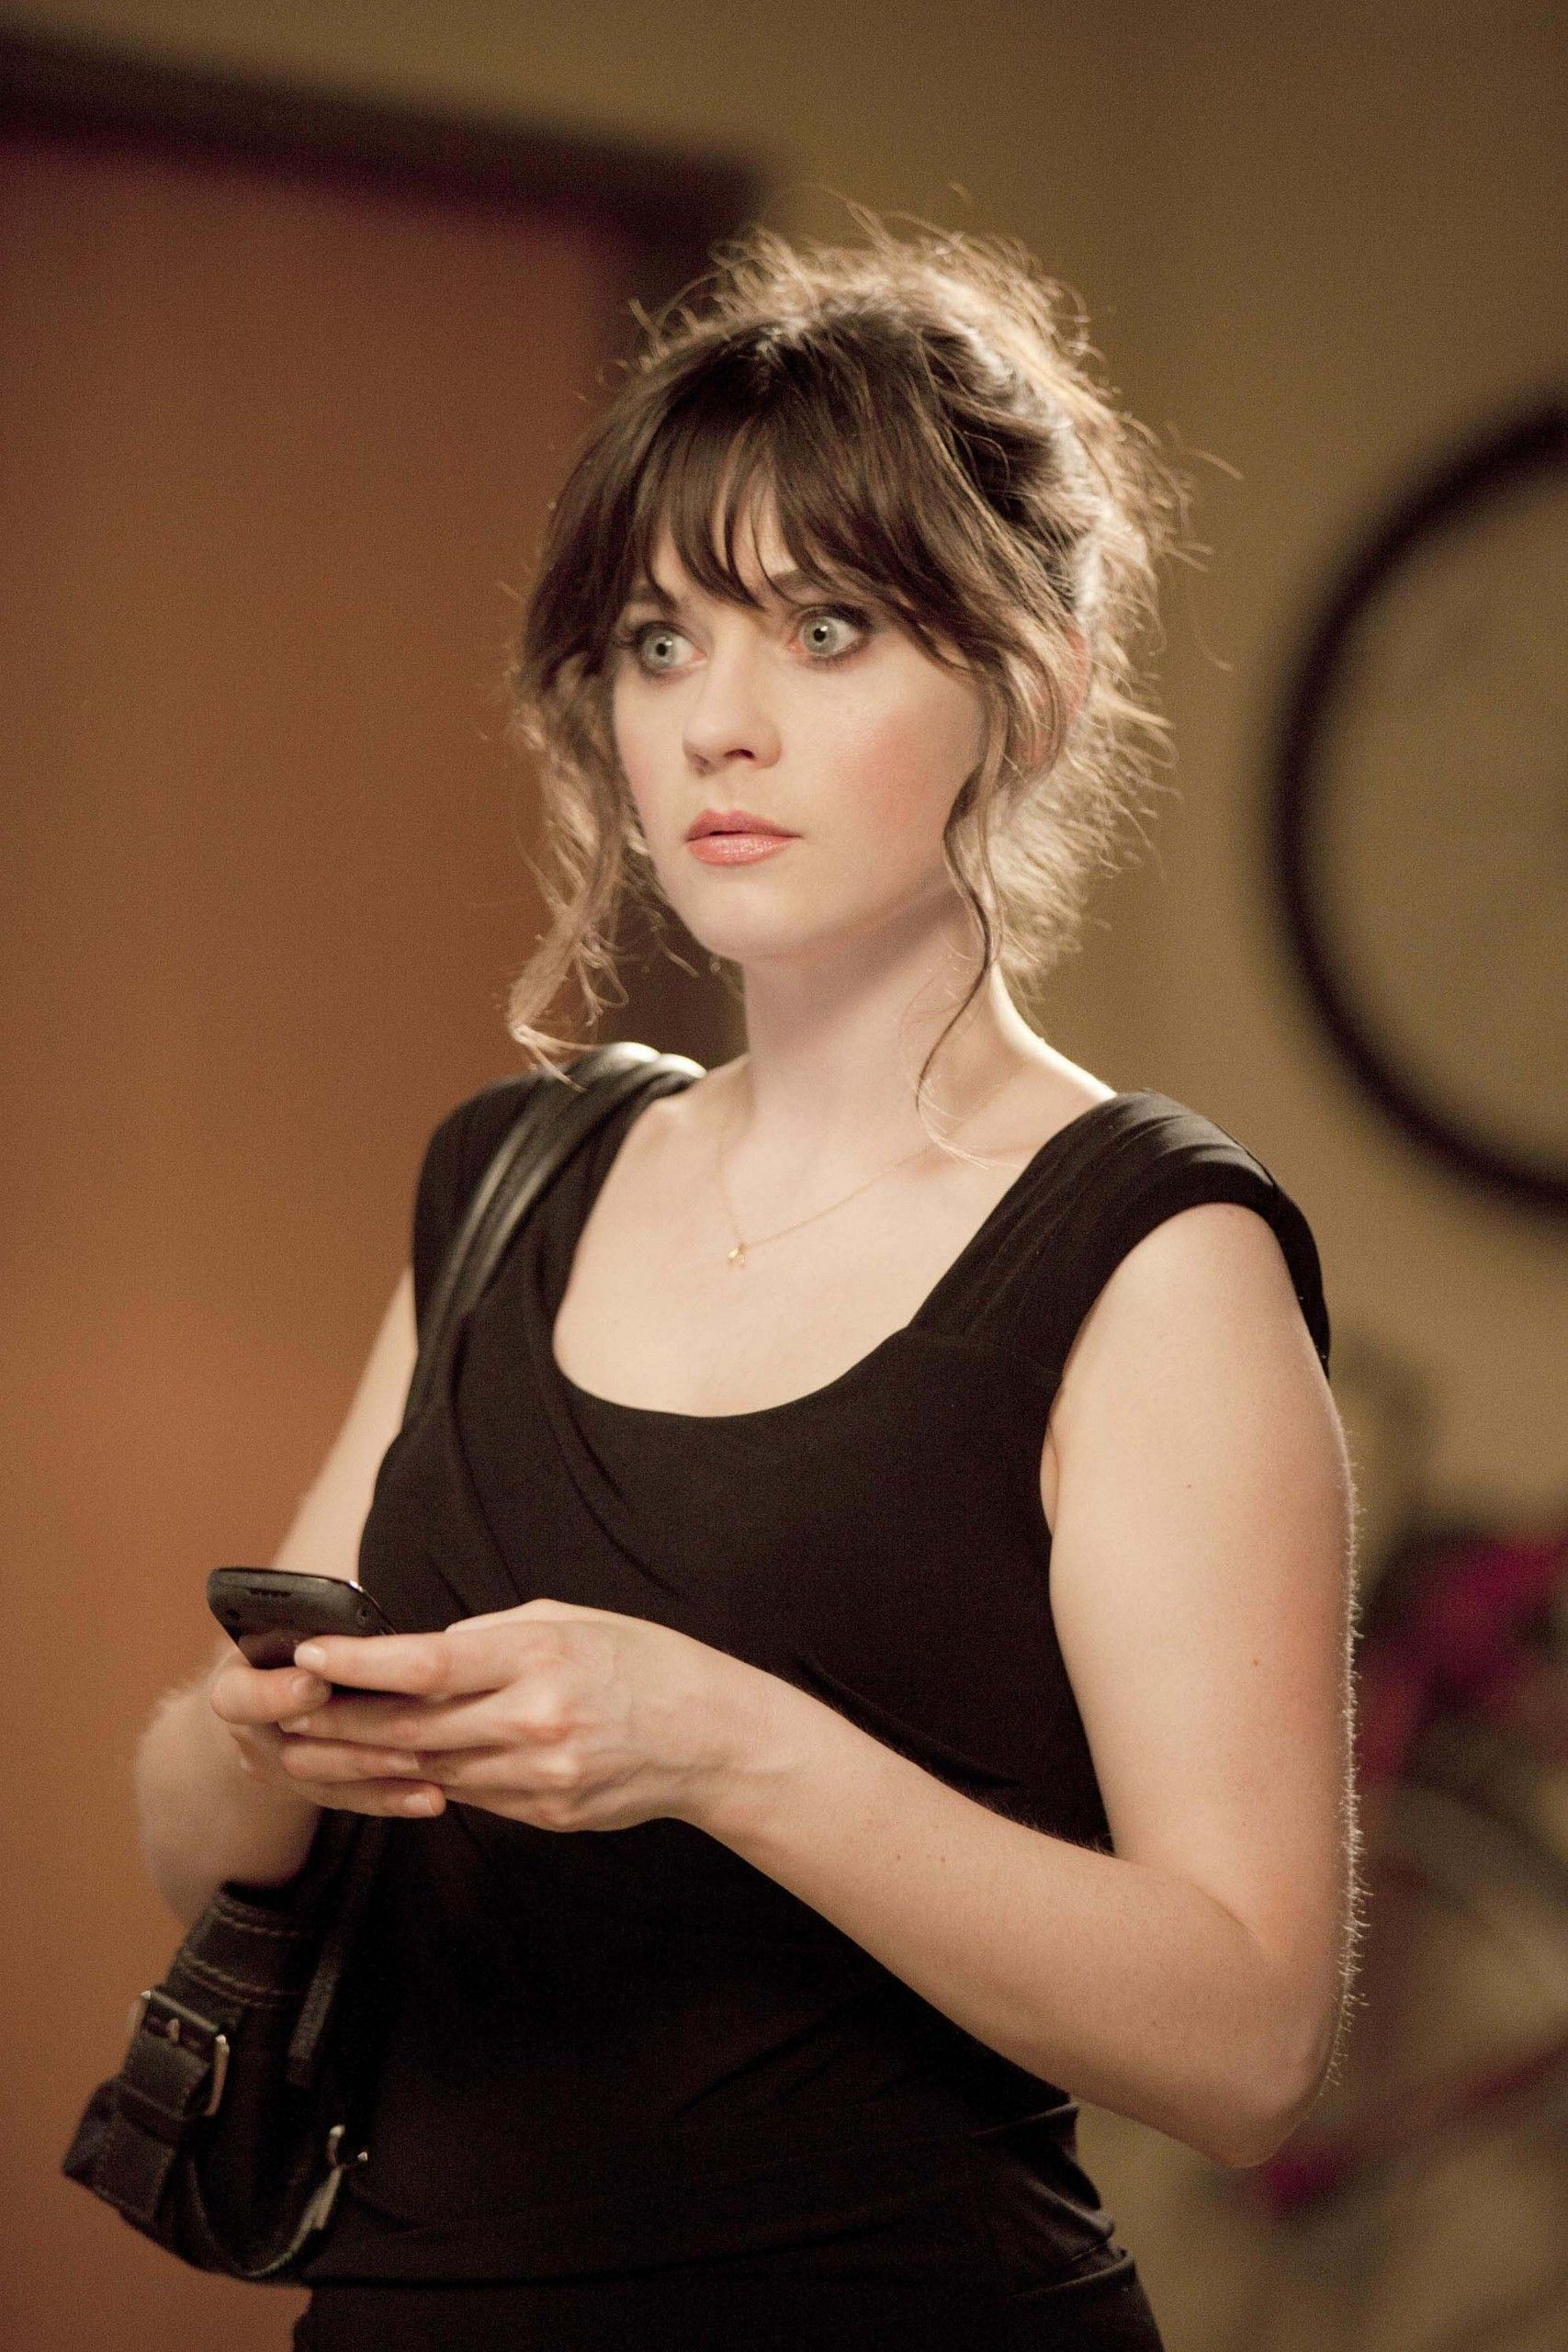 Zooey In The New Girl Zooey Deschanel Hair Zooey Deschanel